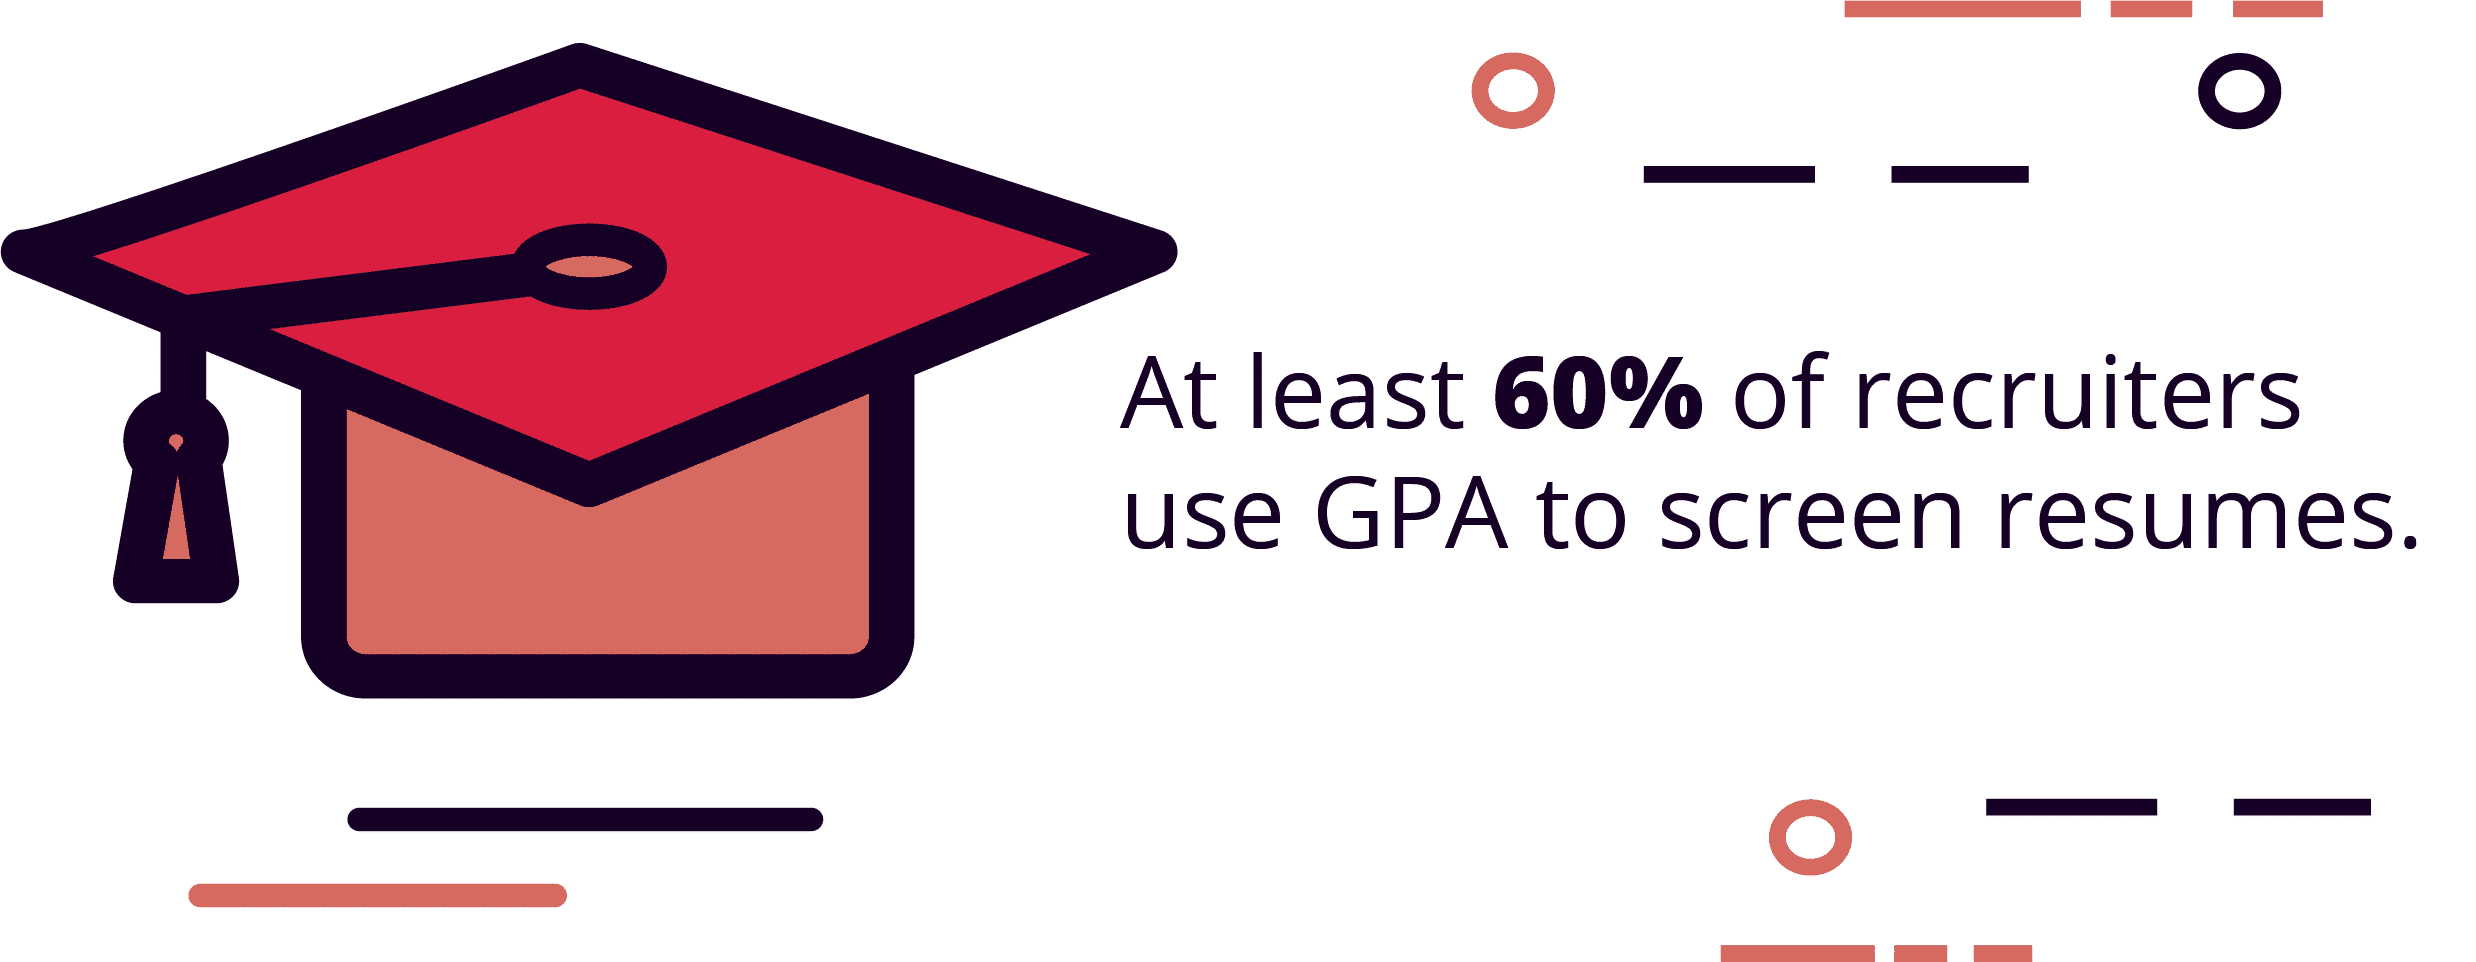 At least 60% of recruiters use GPA to screen resumes